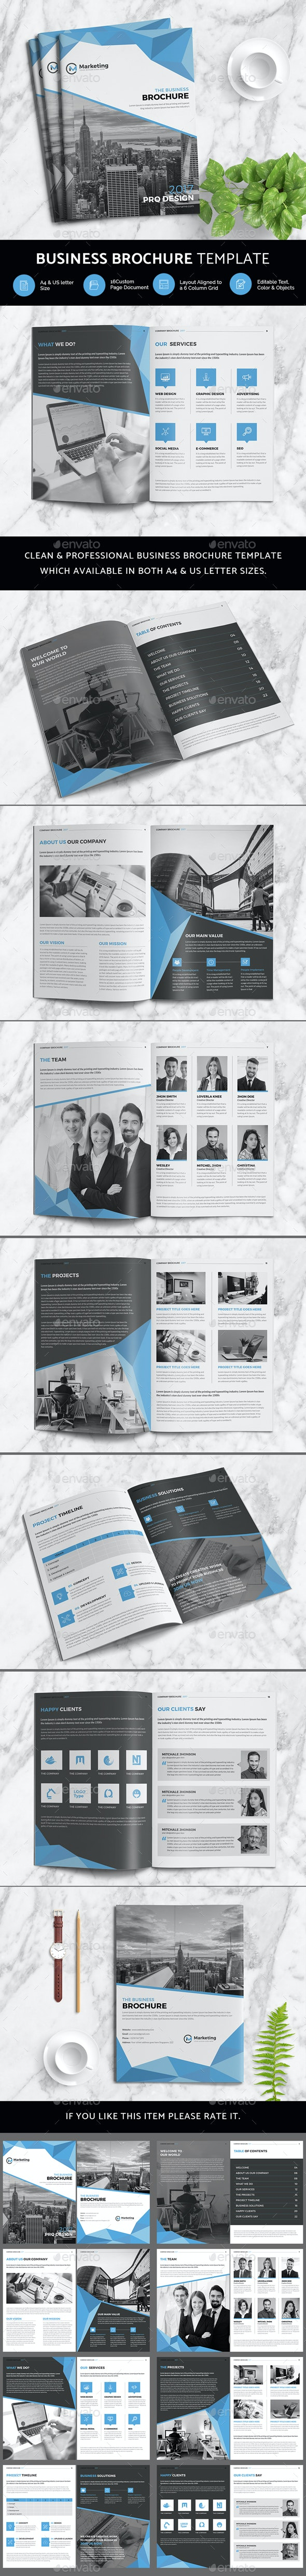 Business Brochure - Print Templates